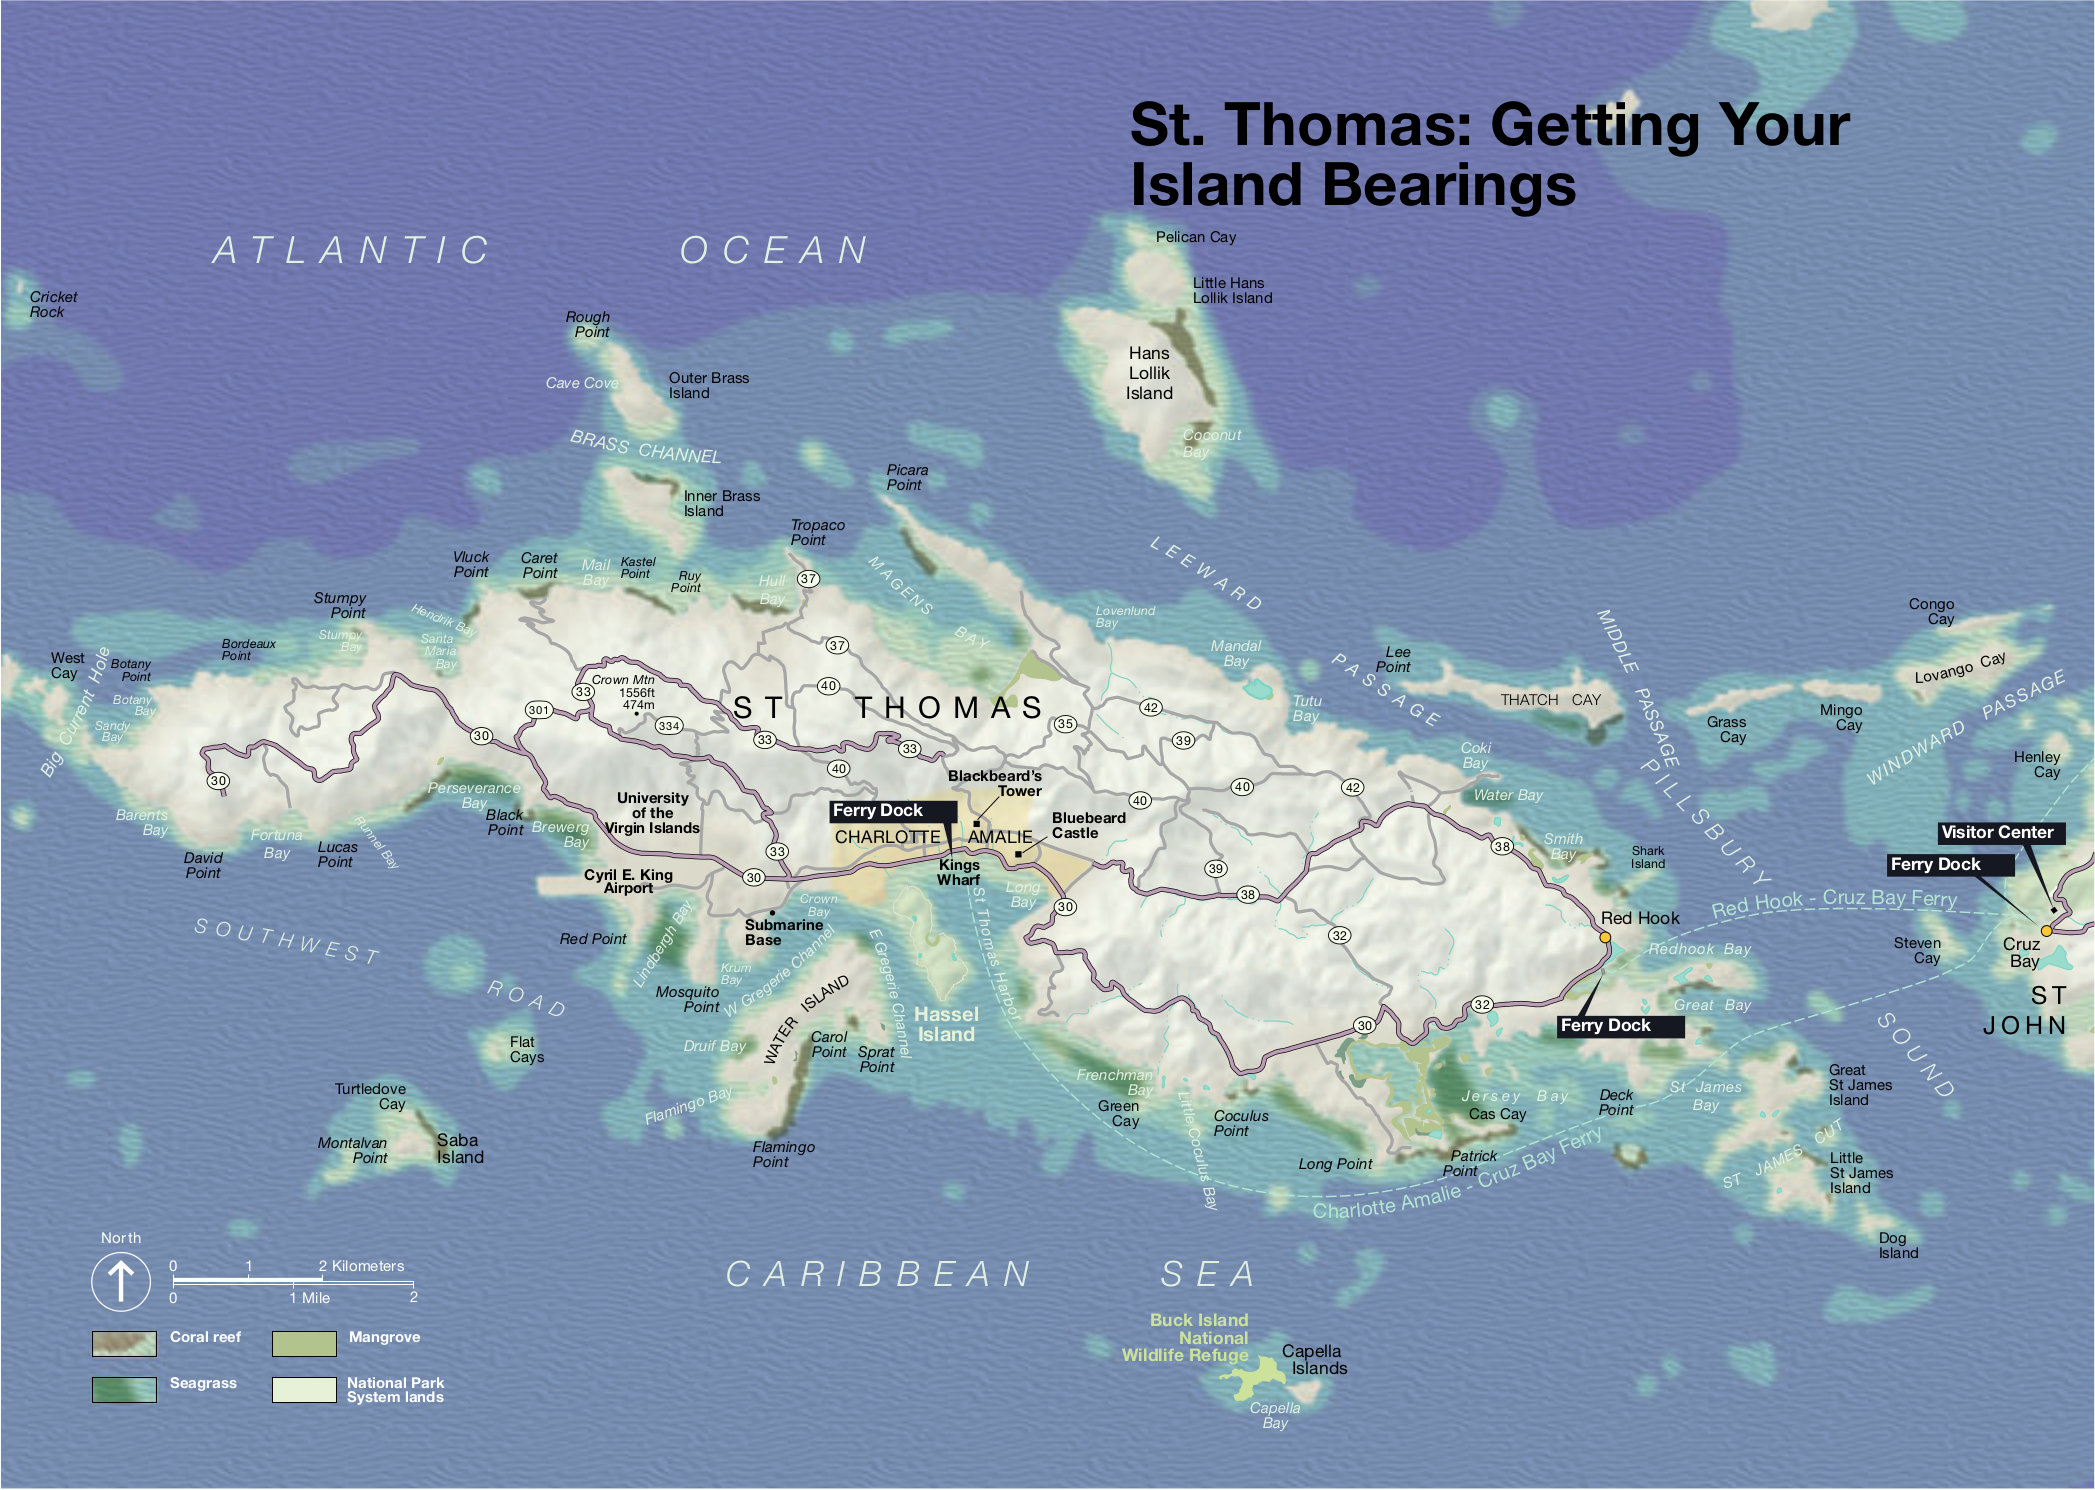 Virgin Islands Maps NPMapscom just free maps period